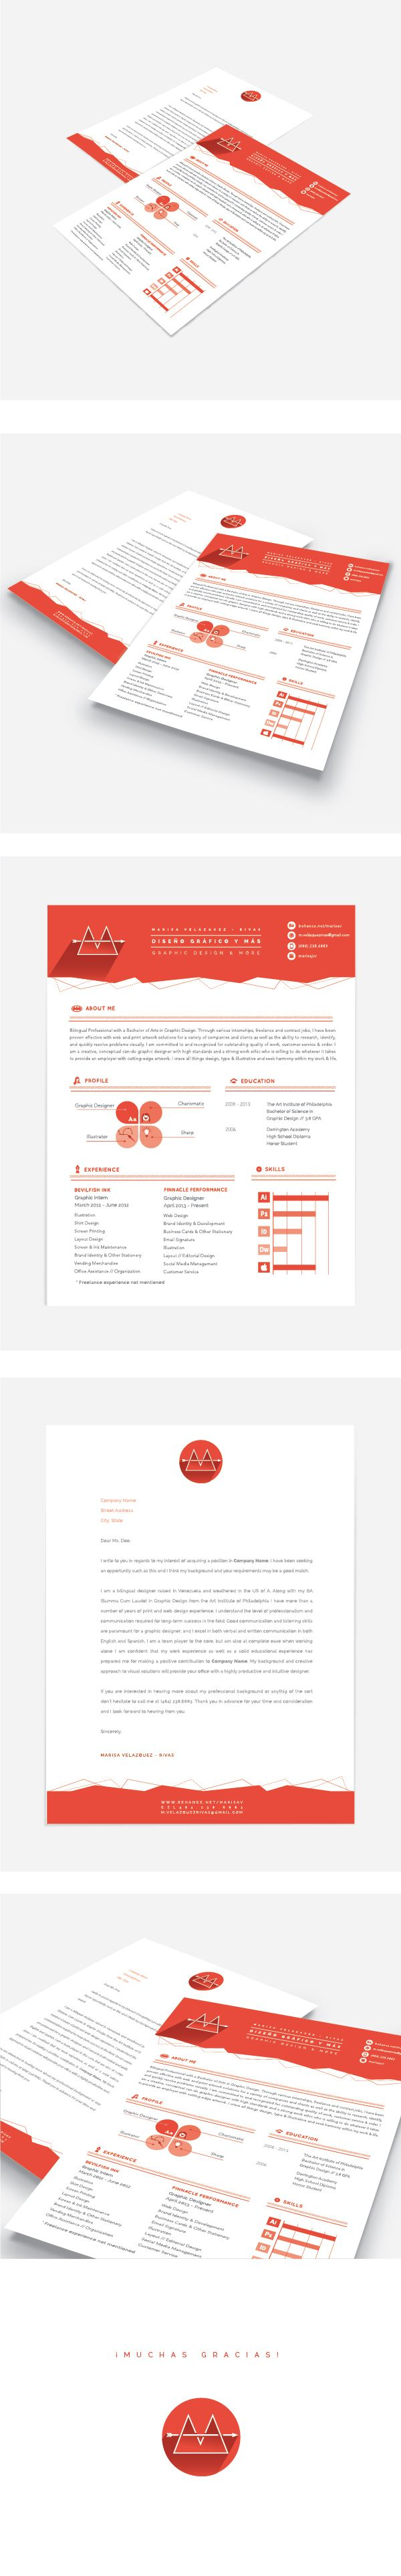 106 Best Cv Design Images On Pinterest Resume Design Design